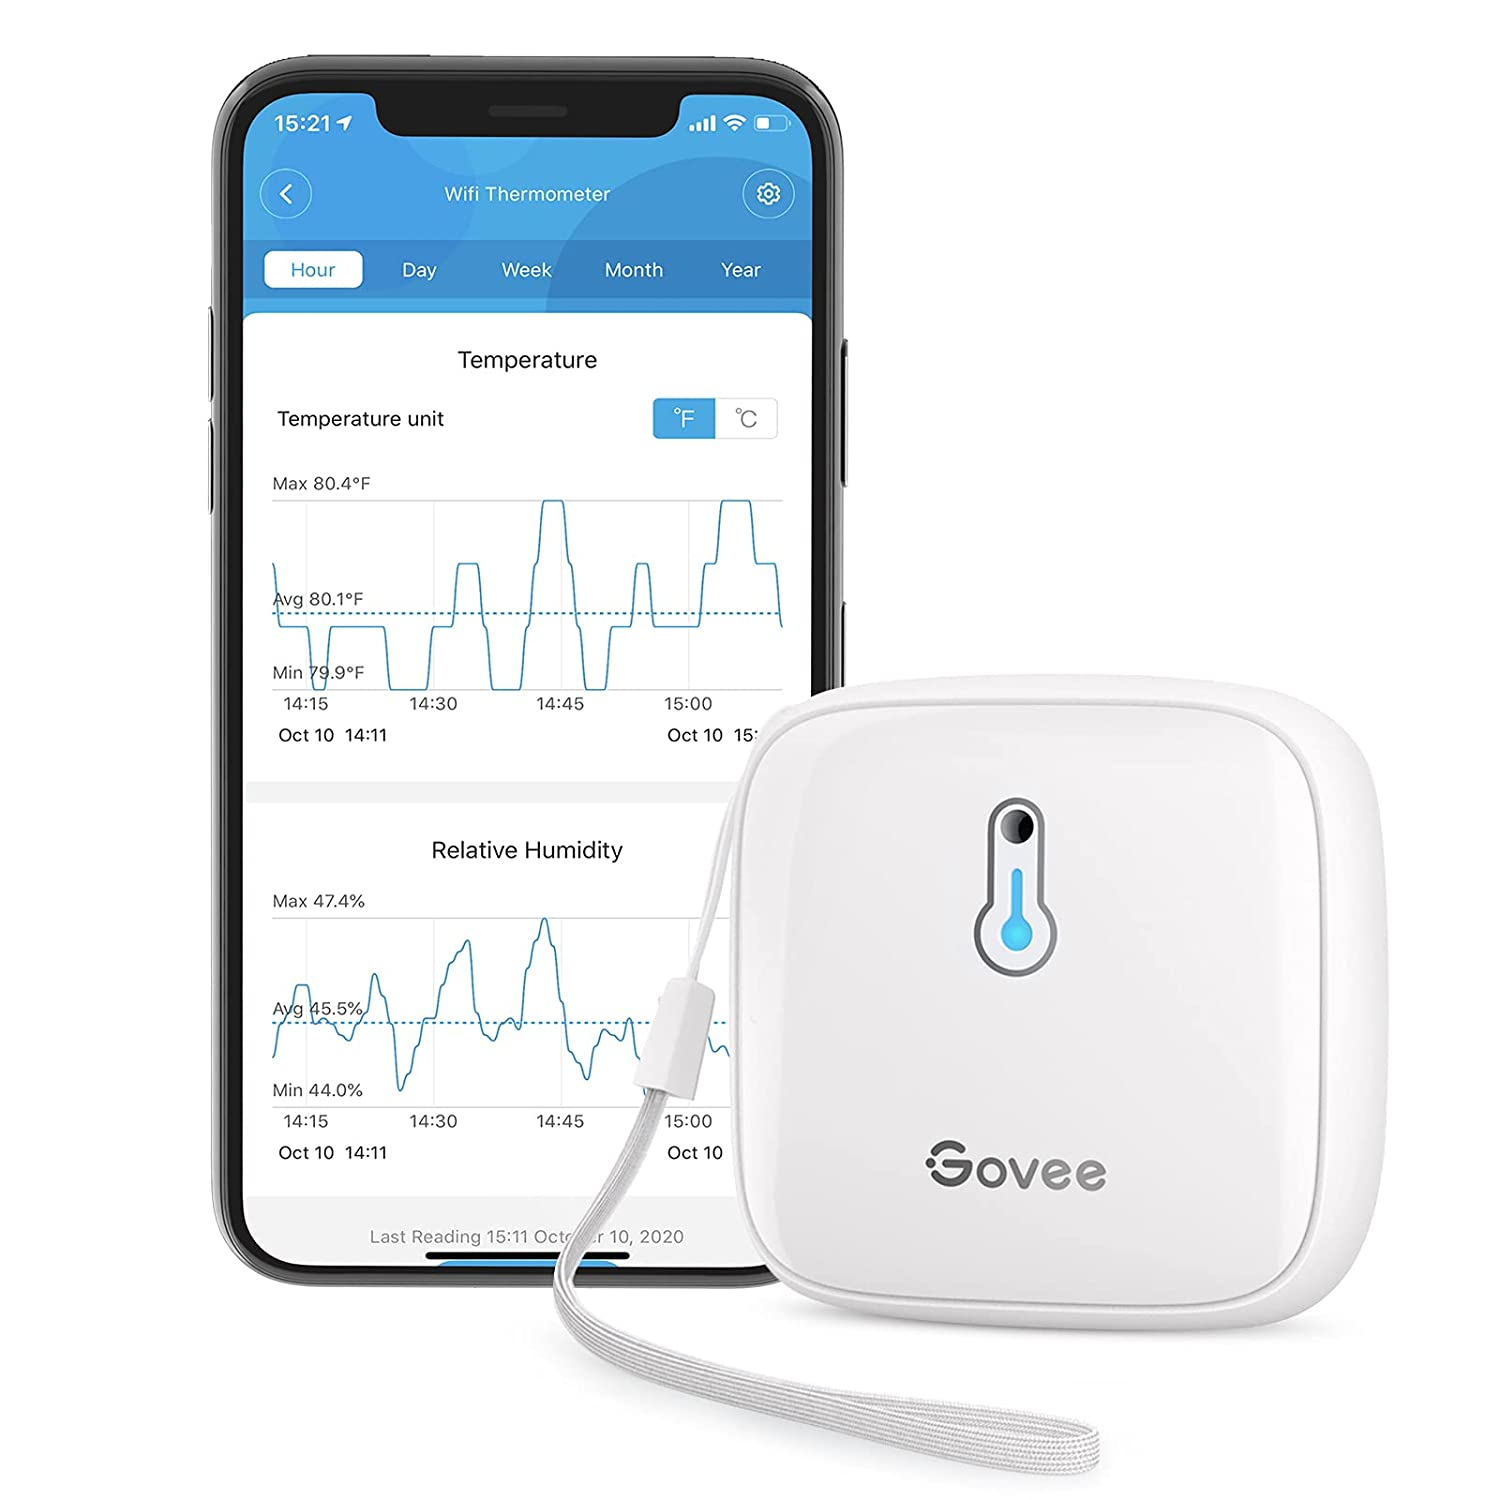 Govee Bluetooth Hygrometer Thermometer, Temperature Gauge Humidity Meter, App Alerts, Free Data Export Storage, Up to 500 Days Battery Life, 230ft Connecting Range for Humidor, Wine Cellar, Greenhouse